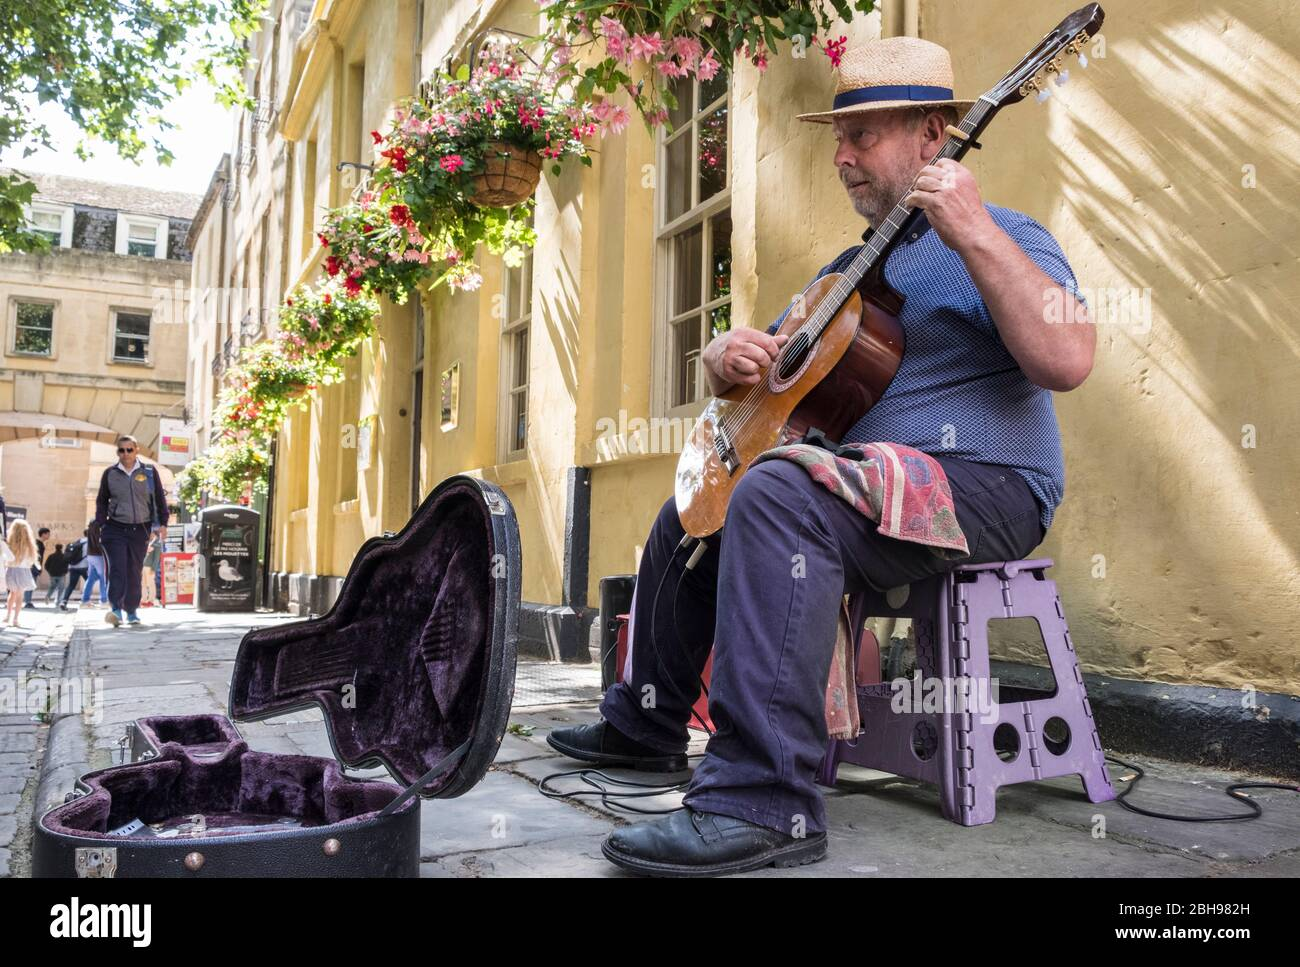 Busker playing Spanish classical guitar on street pavement, Bath, Somerset, England, GB, UK Stock Photo